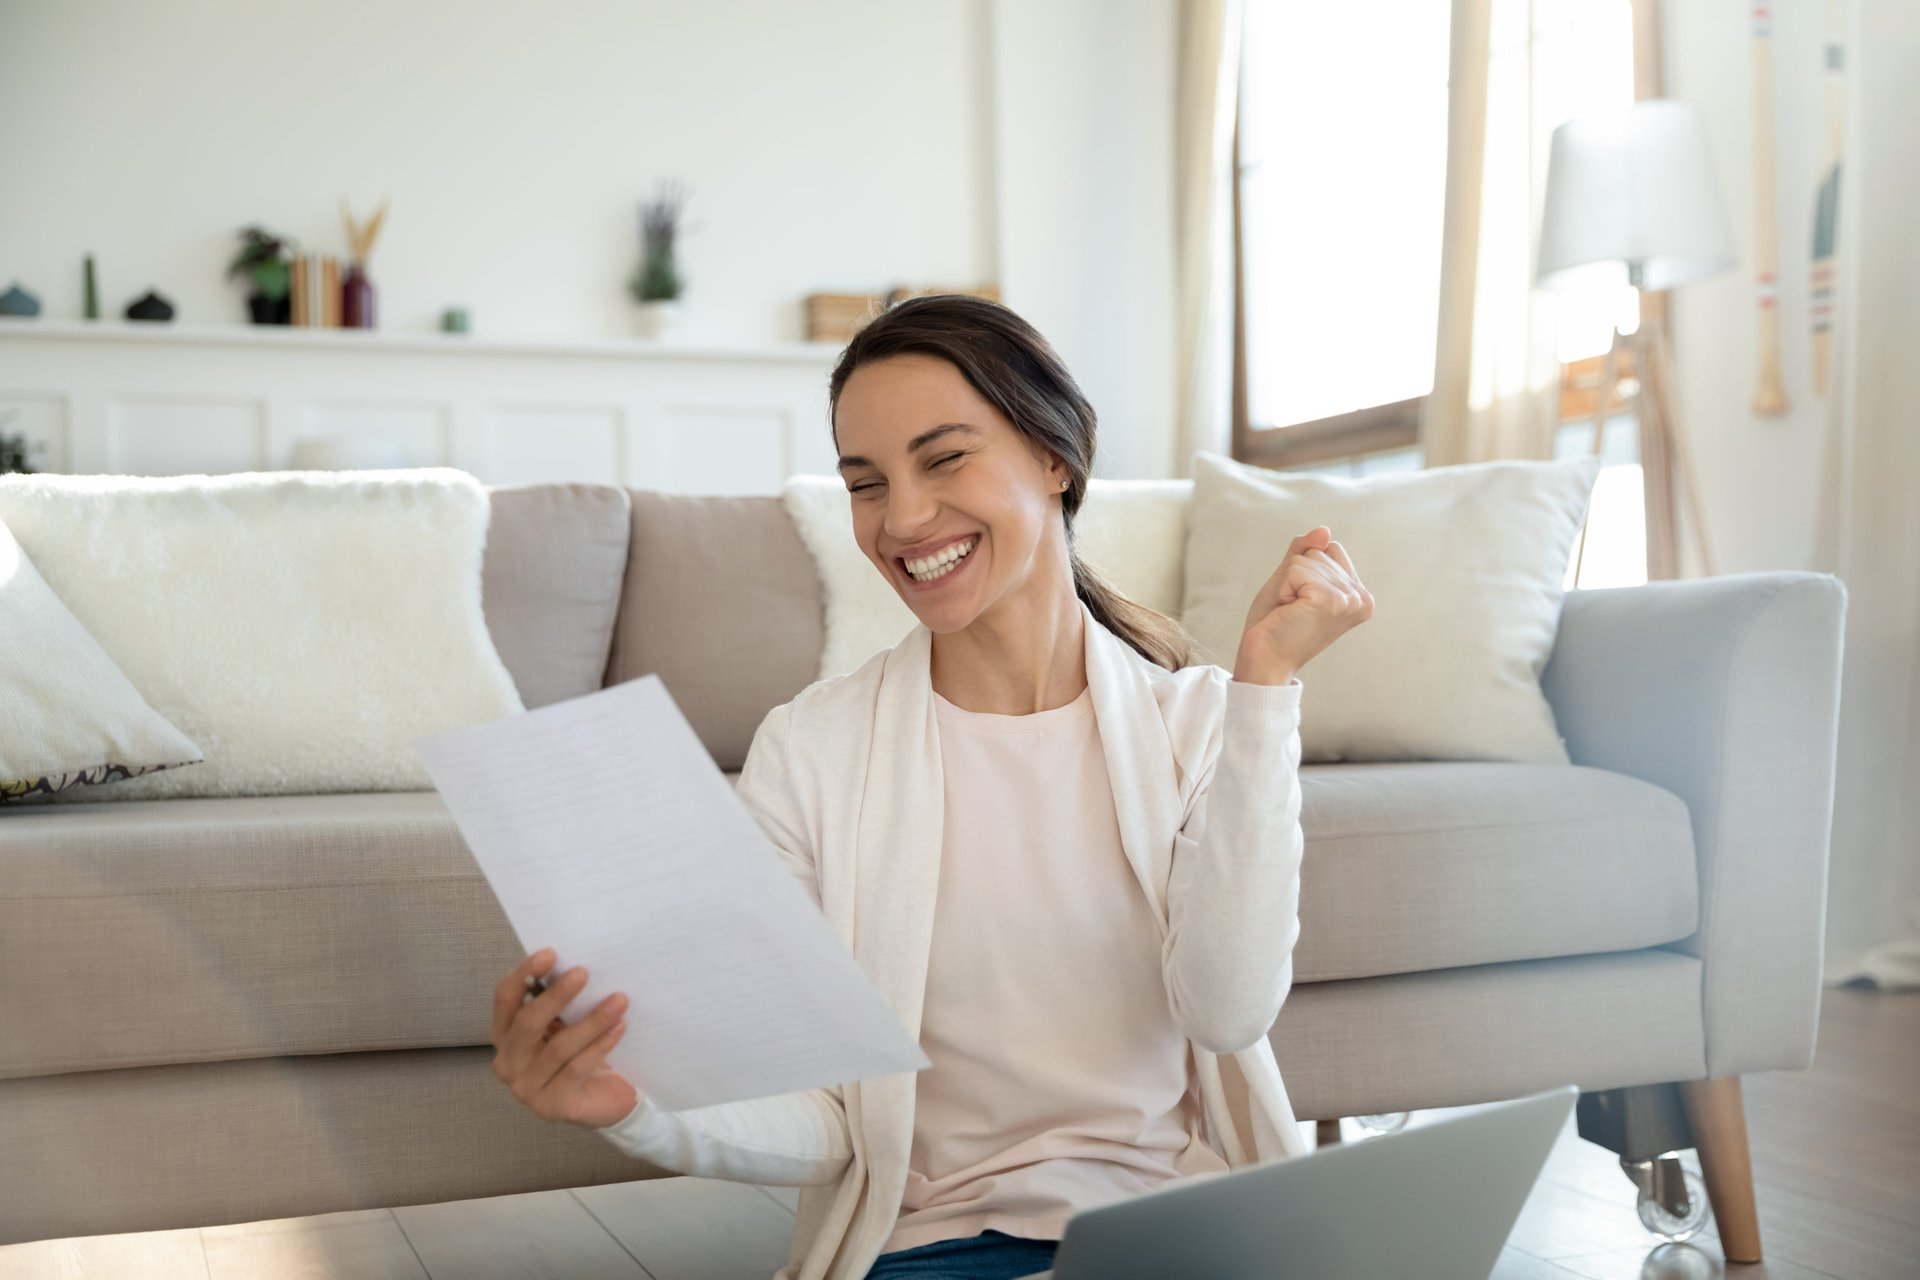 Woman happy with her free tax filing online